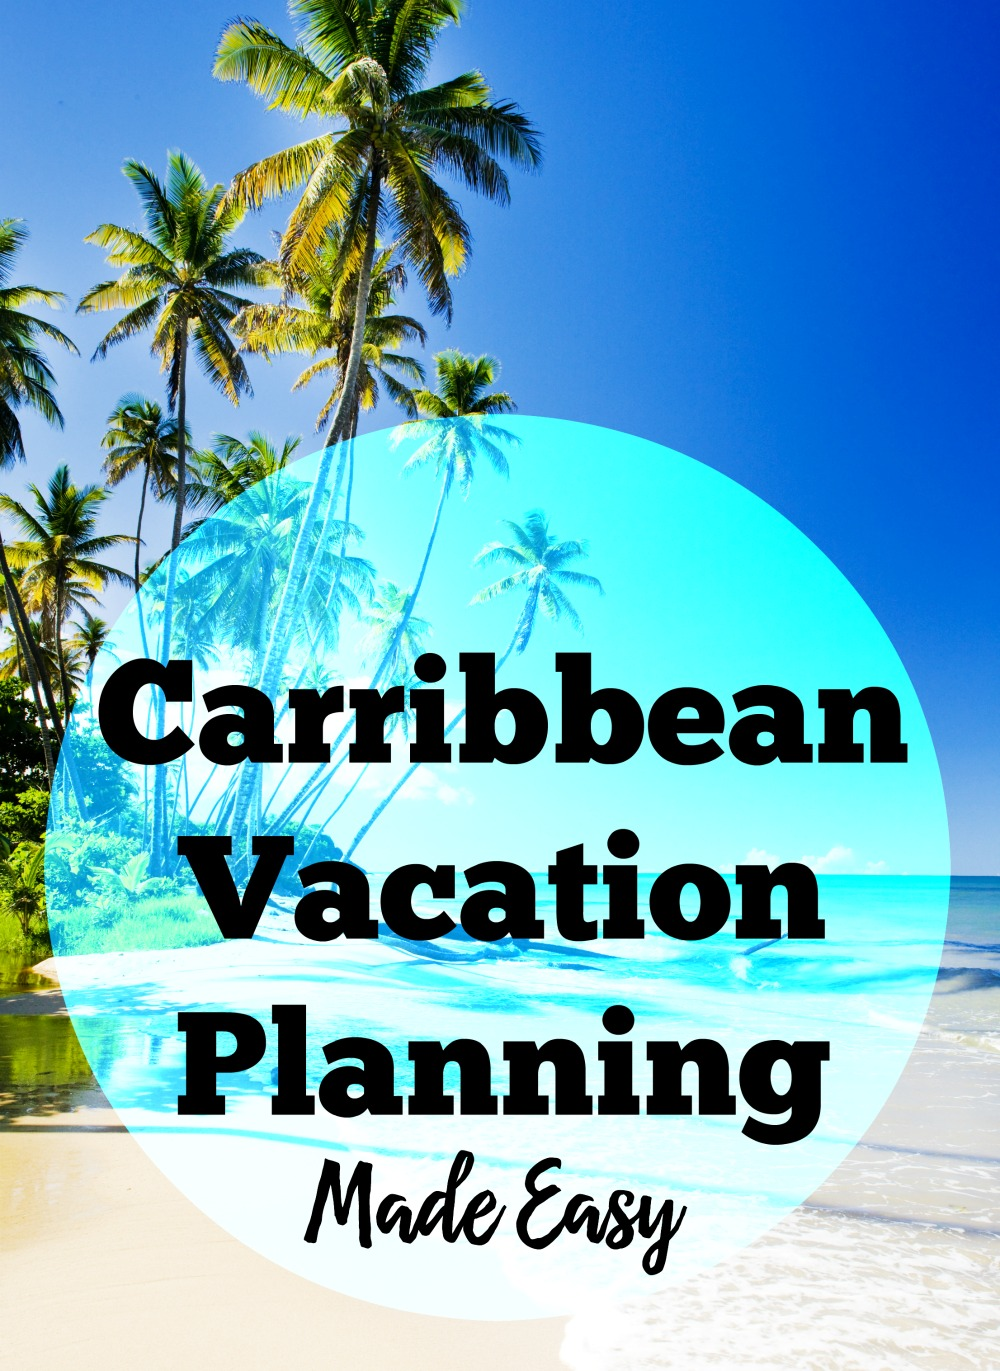 Caribbean Vacation Planning Made Easy